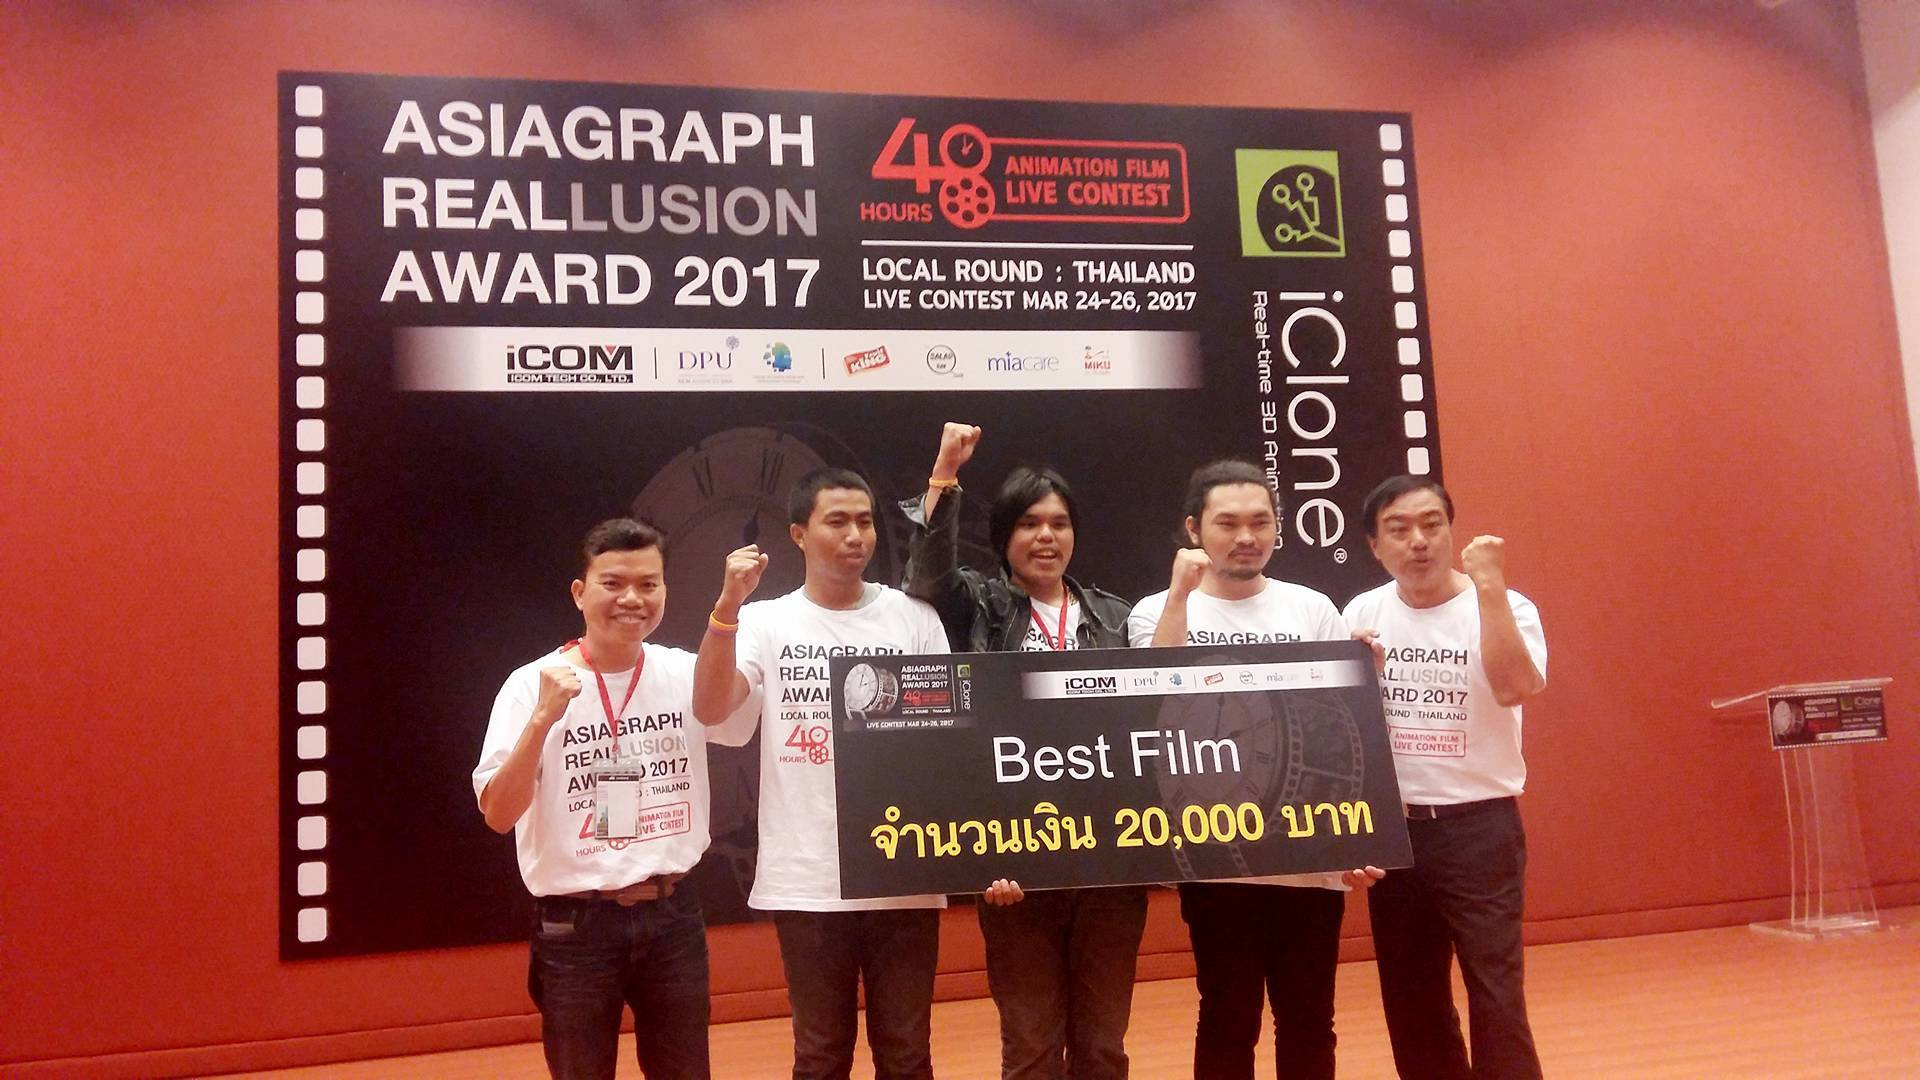 MSU Creative Media Students Win the Best Film Award to Represent Thai University Students in the ASIAGRAPH REALLUSION AWARD 2017